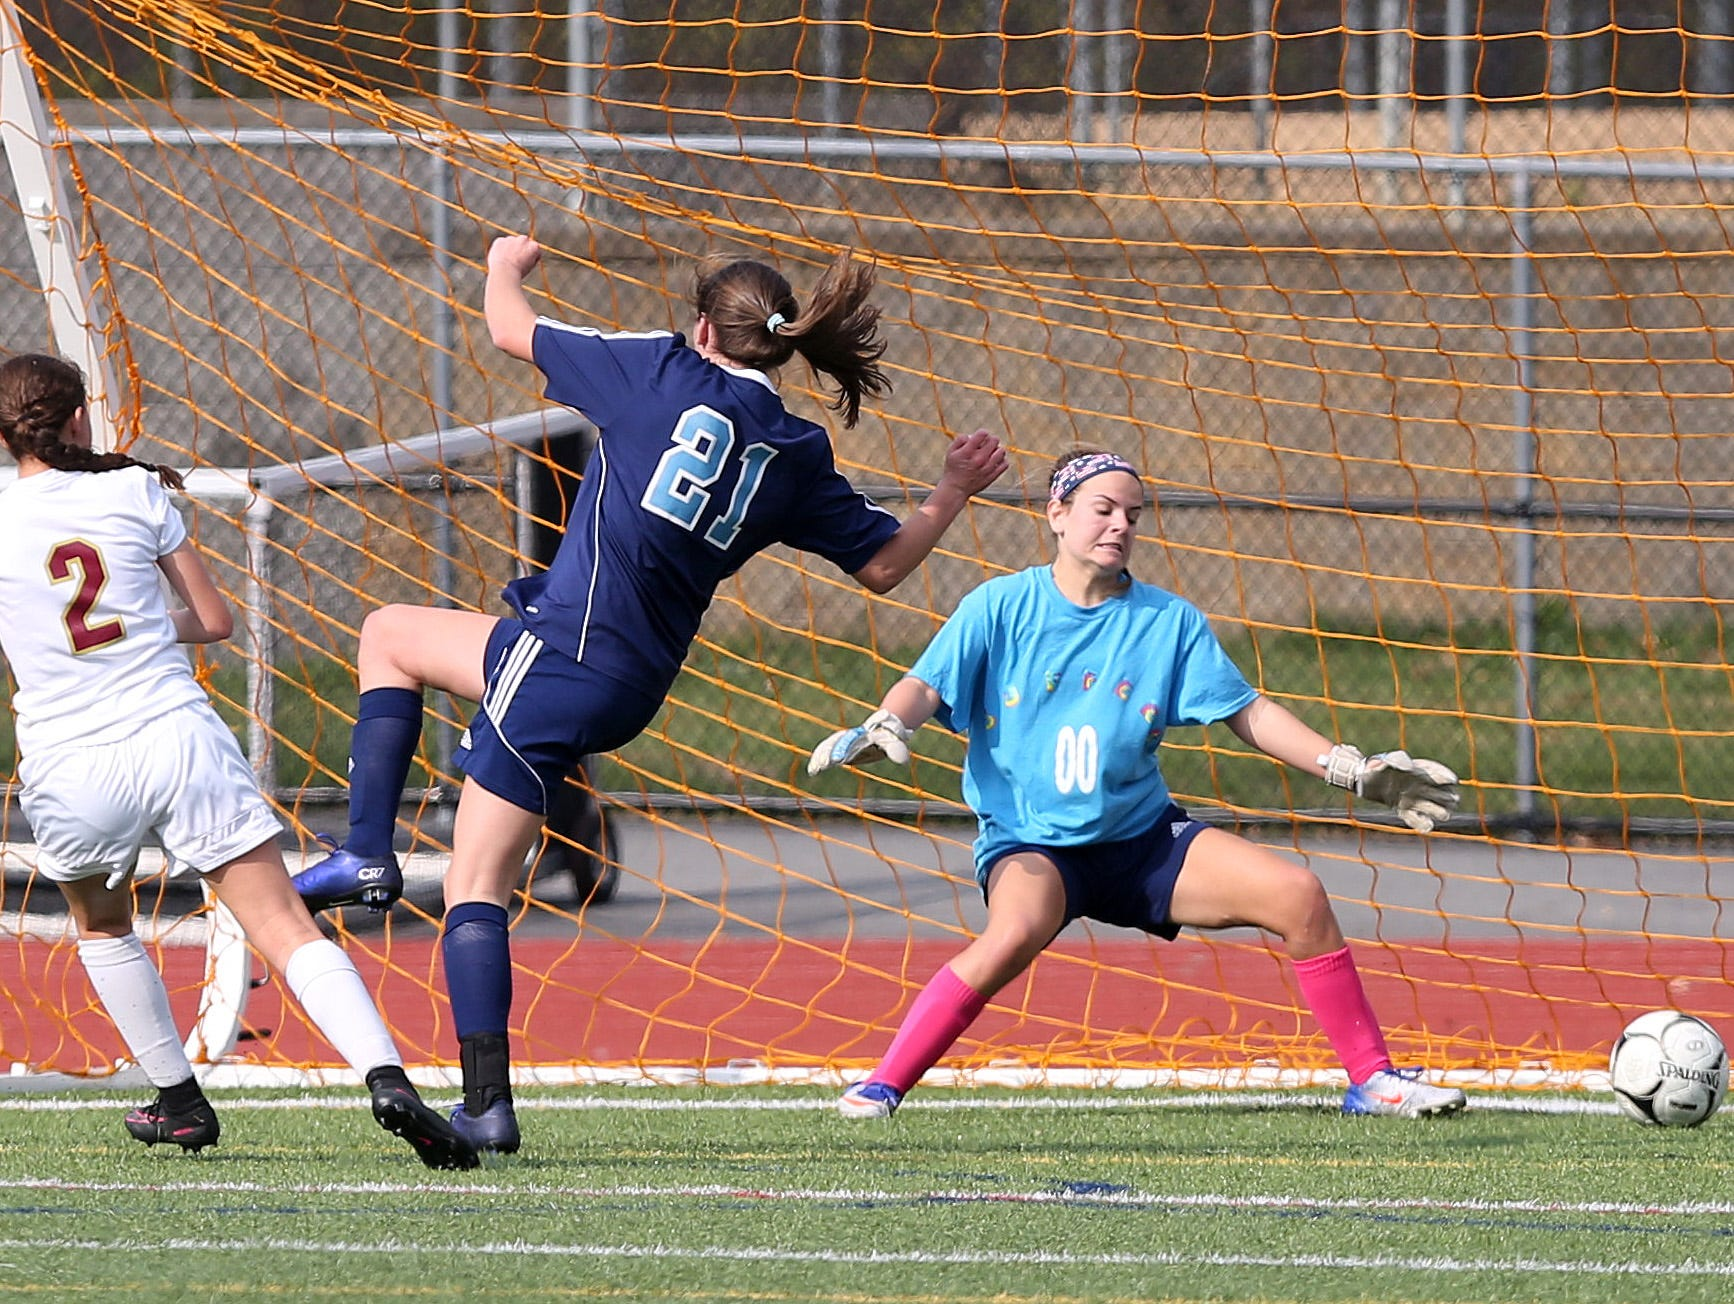 From left, Arlington's Meggie Buttinger (2) gets a shot by Suffern goal keeper Morgan Tamburro during the girls soccer Section 1 Class AA championship game at Yorktown High School Oct. 30, 2016. Arlington won the game 2-0.